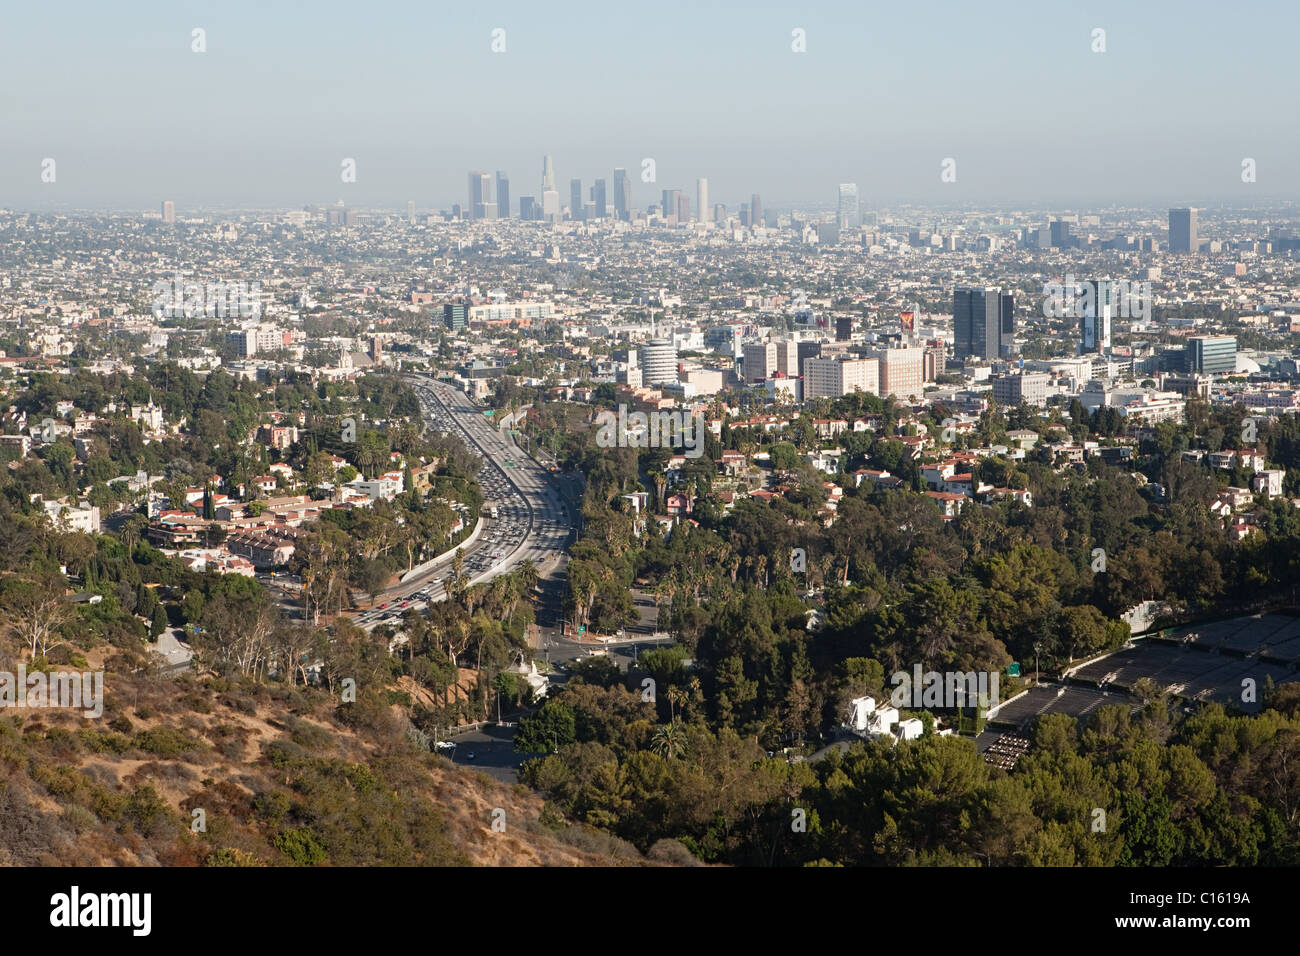 Hollywood Hills and Downtown LA, Los Angeles County, California, USA - Stock Image